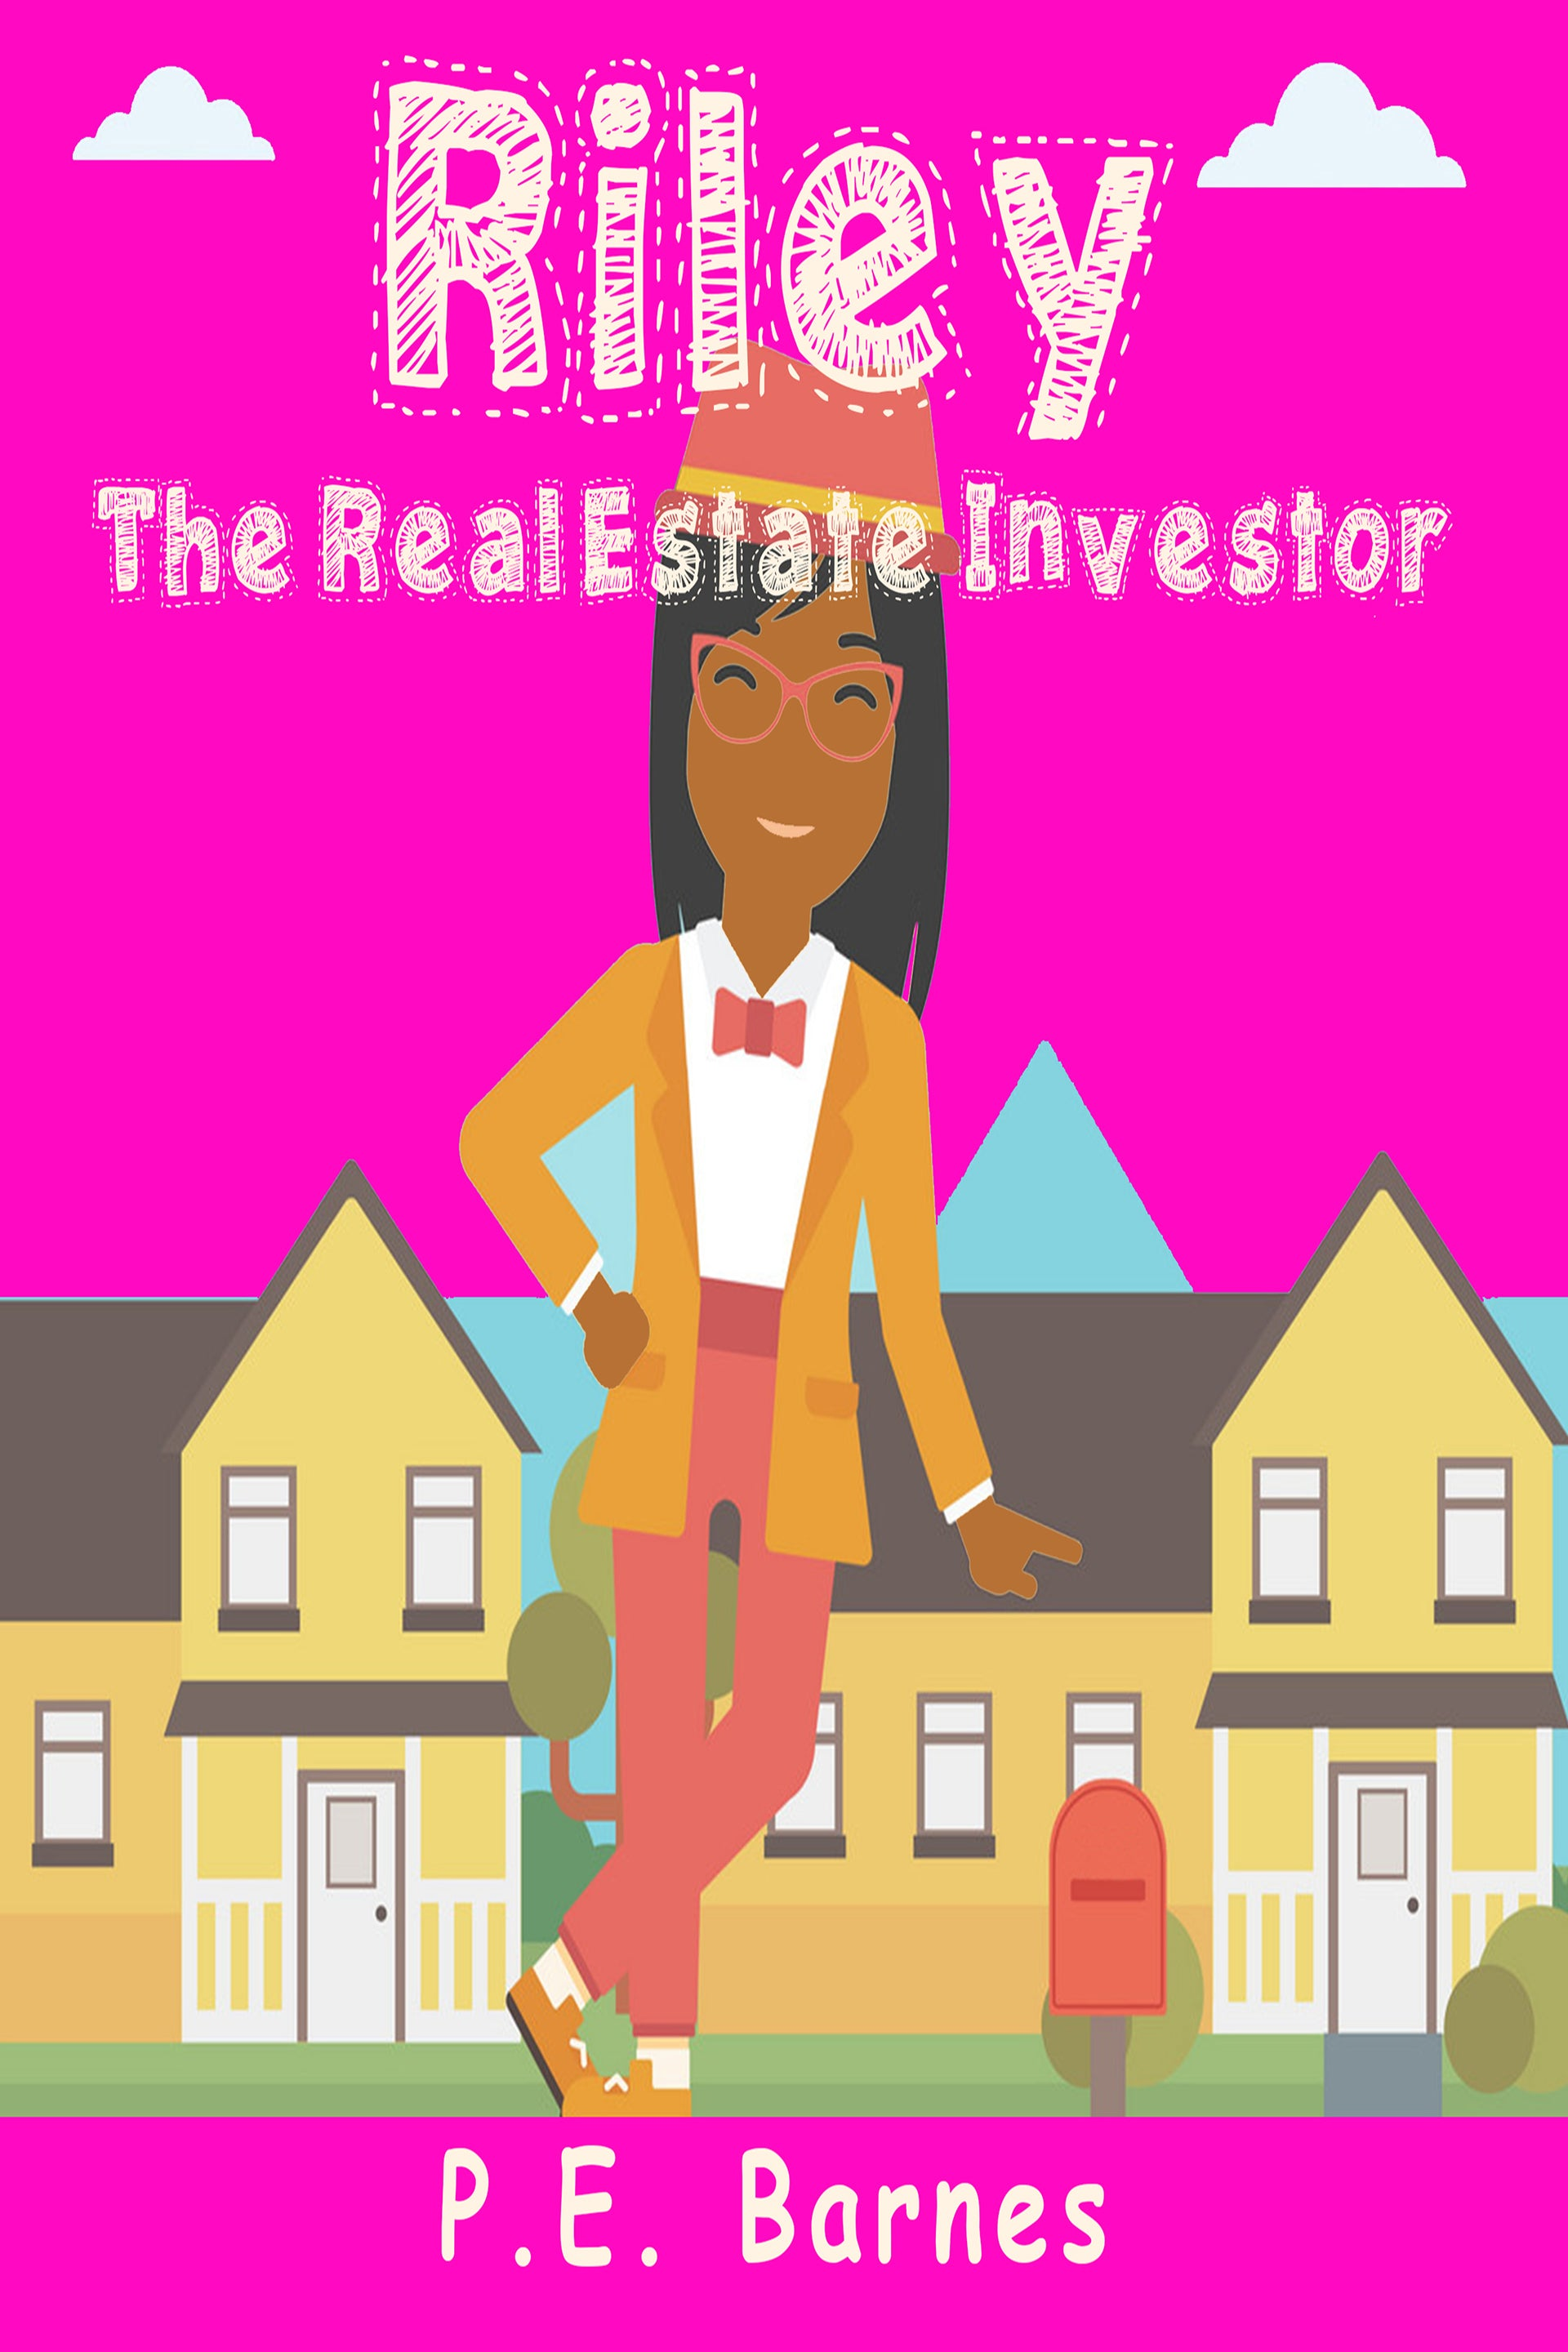 Riley the Real Estate Investor (Ages 9-12)